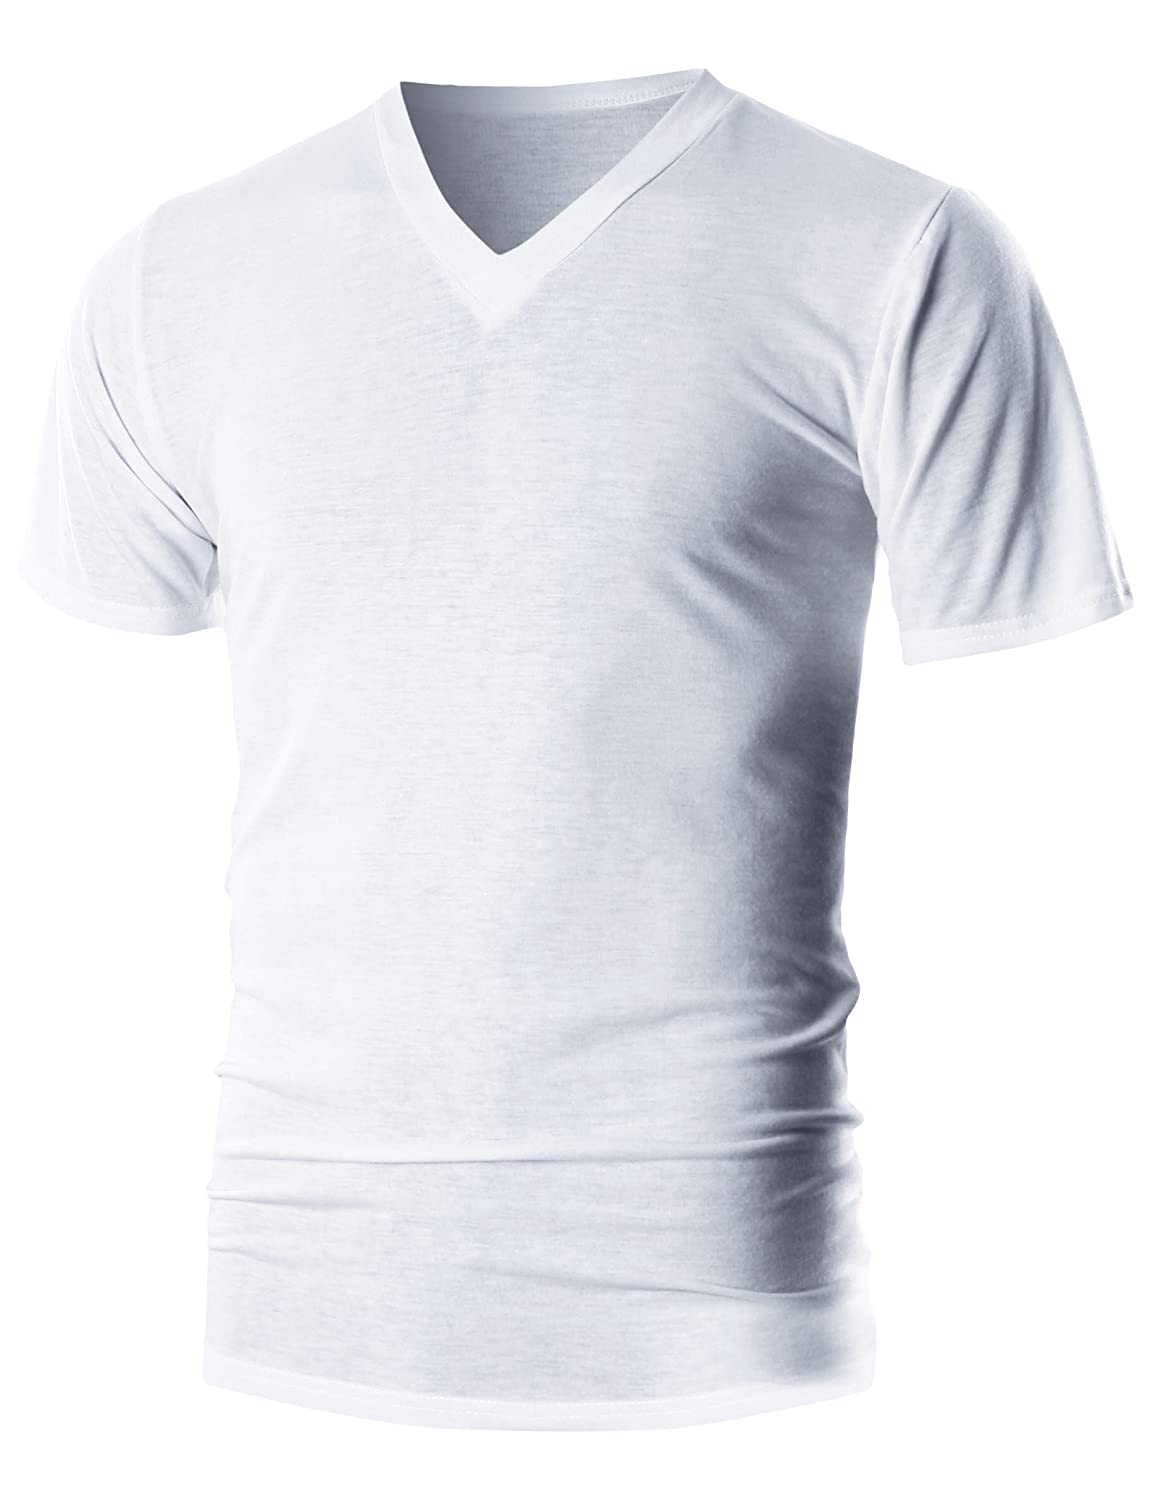 GIVON SHIRT メンズ B07DHGRPXV Small|Dcp143-white Dcp143-white Small